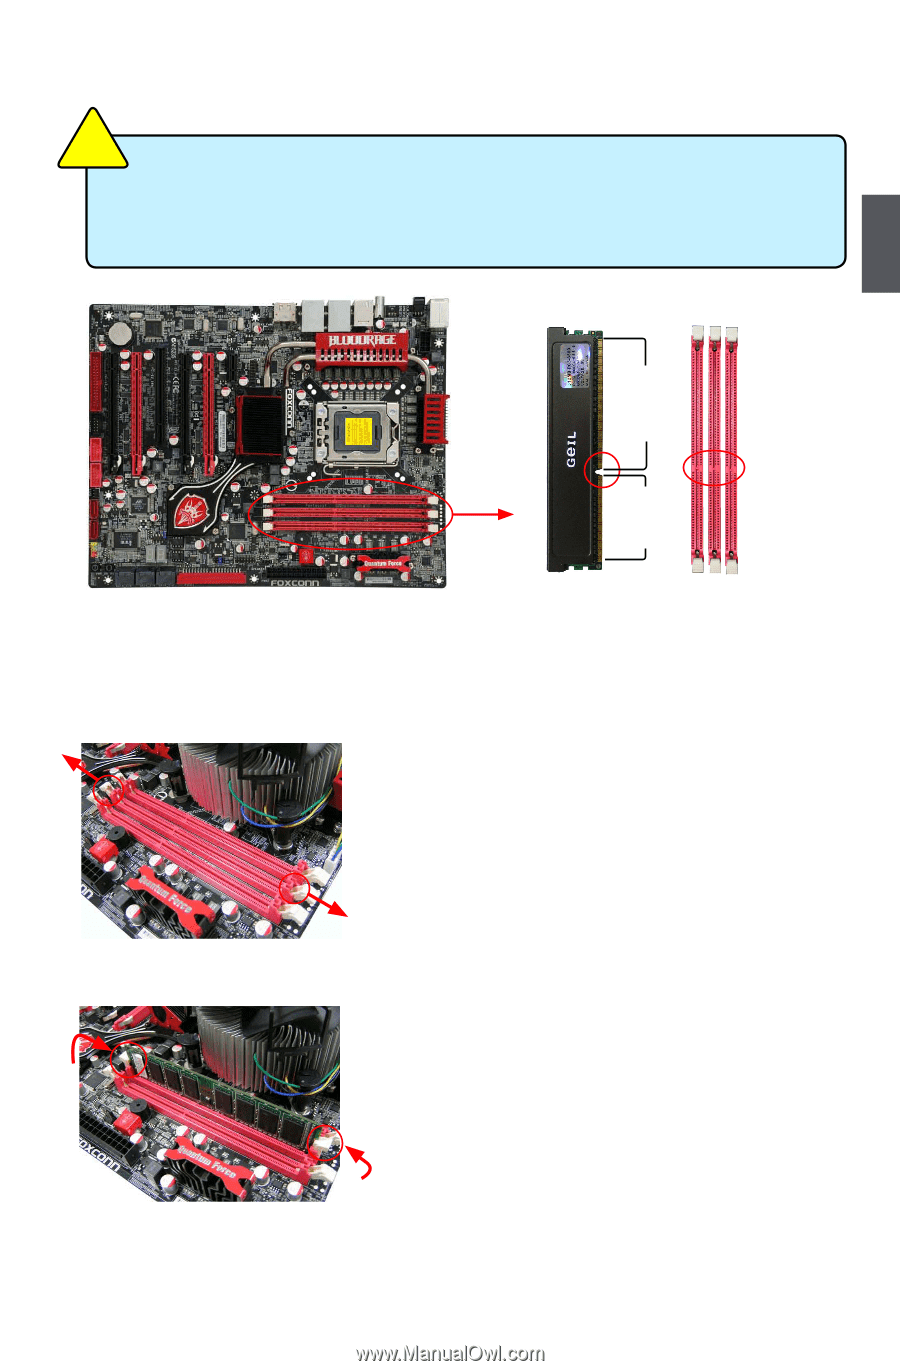 Foxconn Bloodrage GTI Marvell SATA 64x